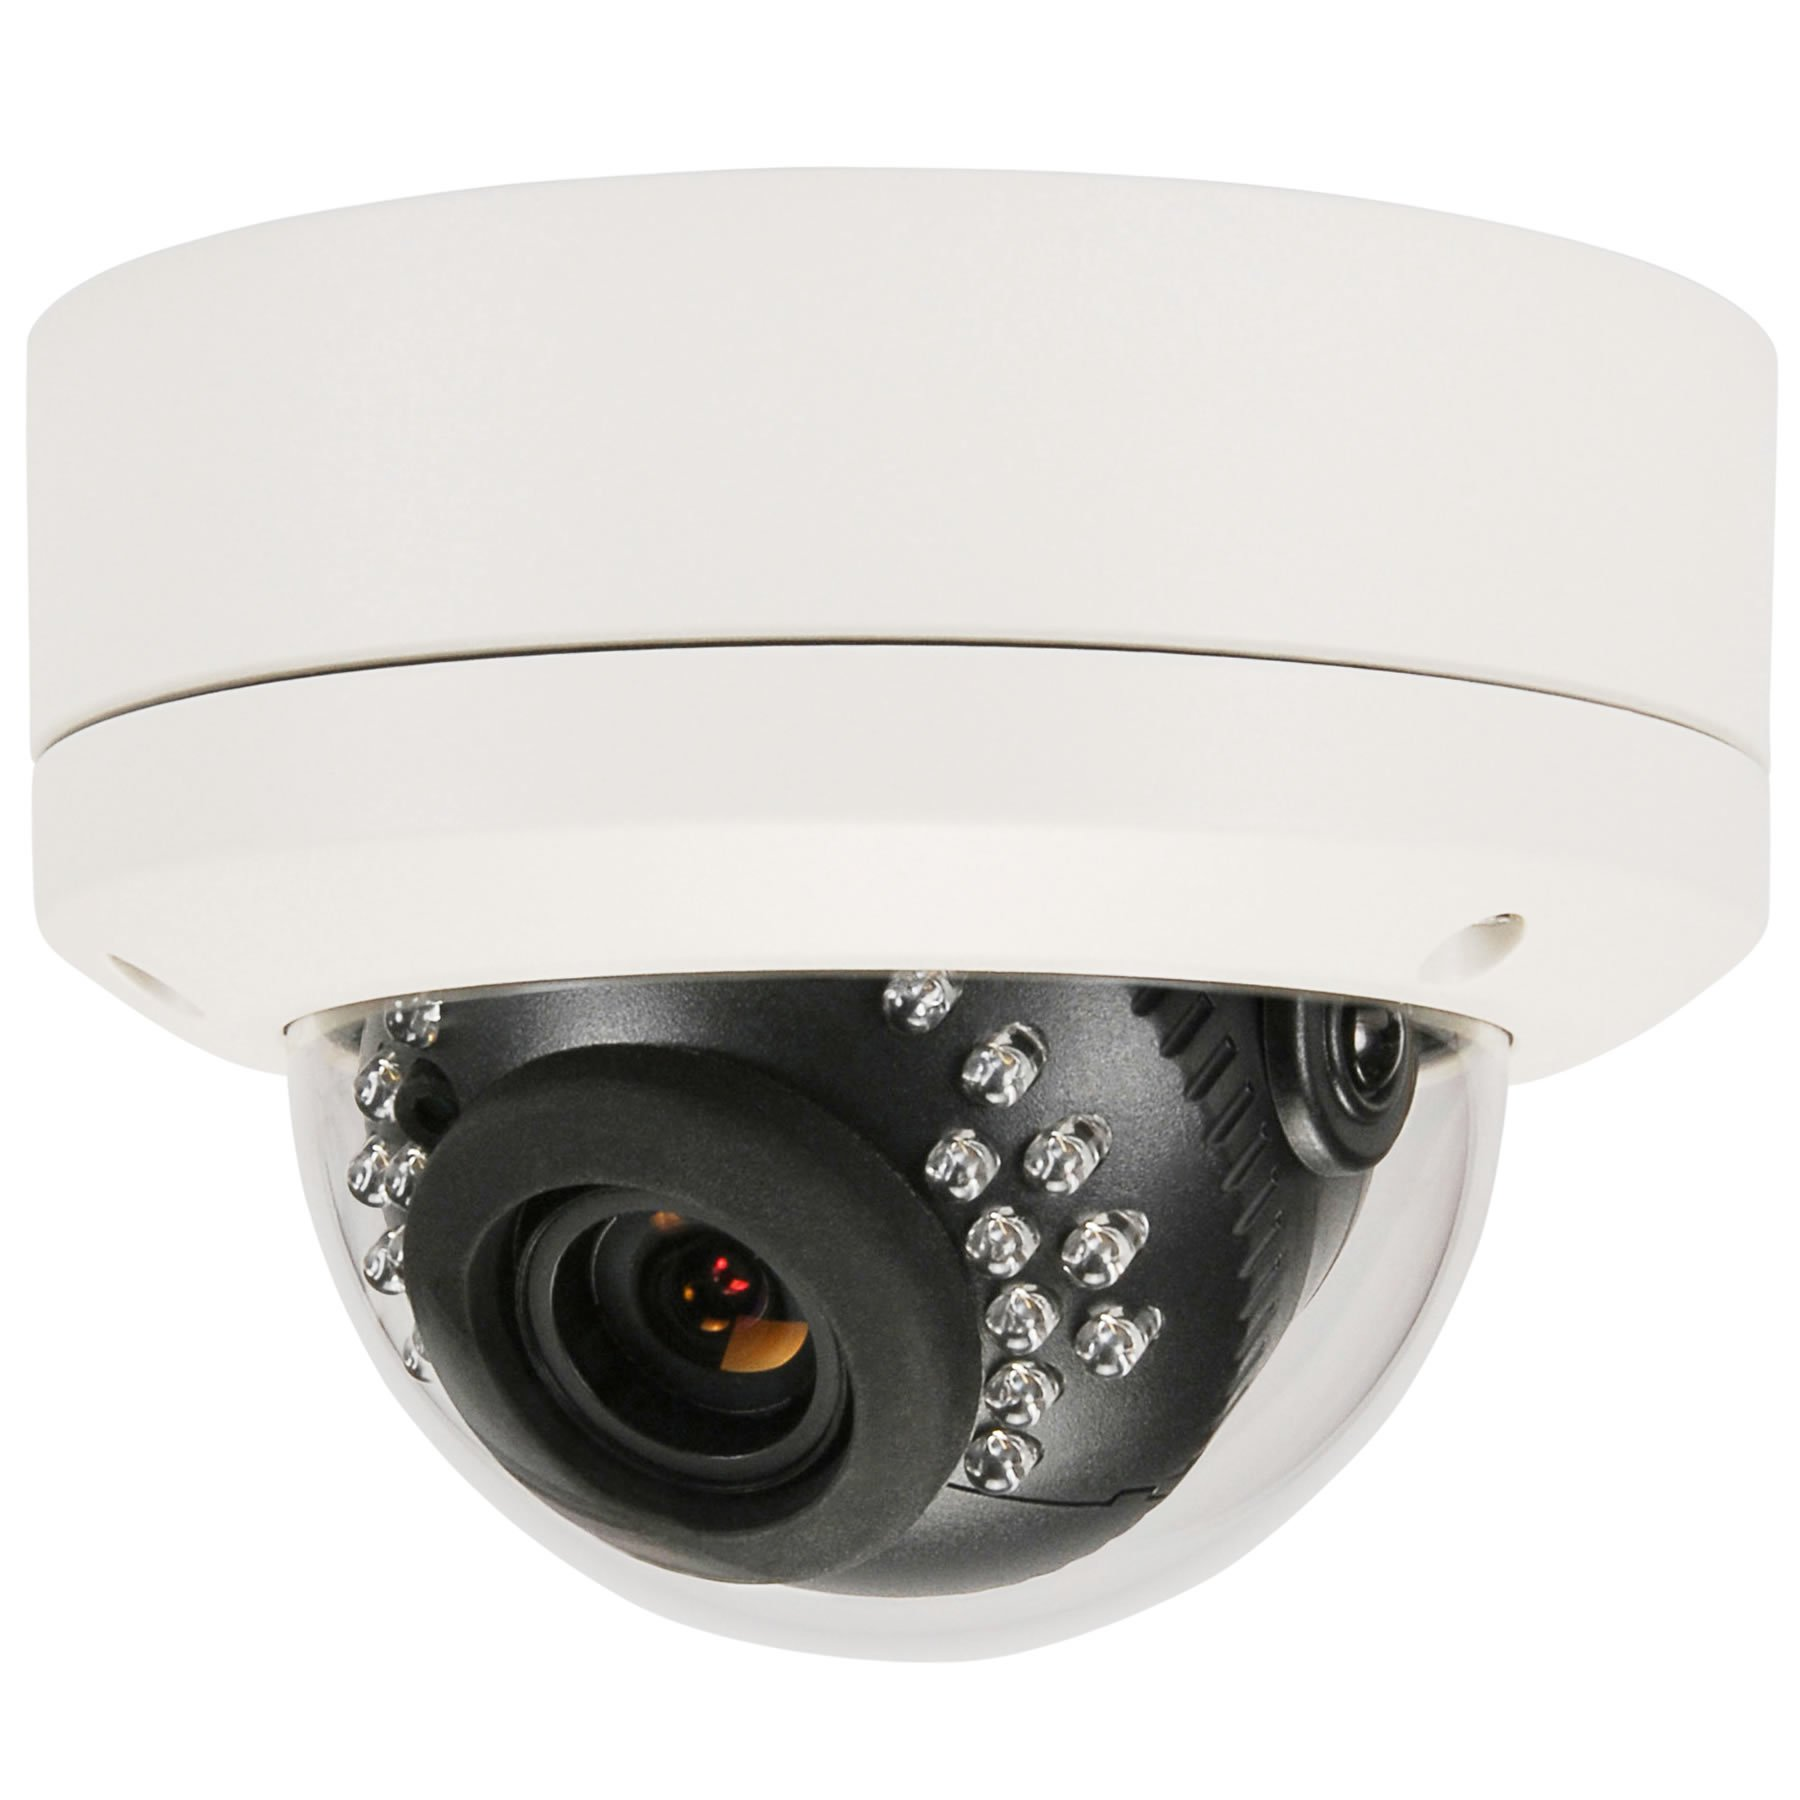 HDView (Business Series 4MP Megapixel HD IP Network Camera H.265 POE WDR Wide Dynamic Range 3.6mm Lens 3-Axis Angle IR Infrared Dome ONVIF, VCA Intelligent Analytics